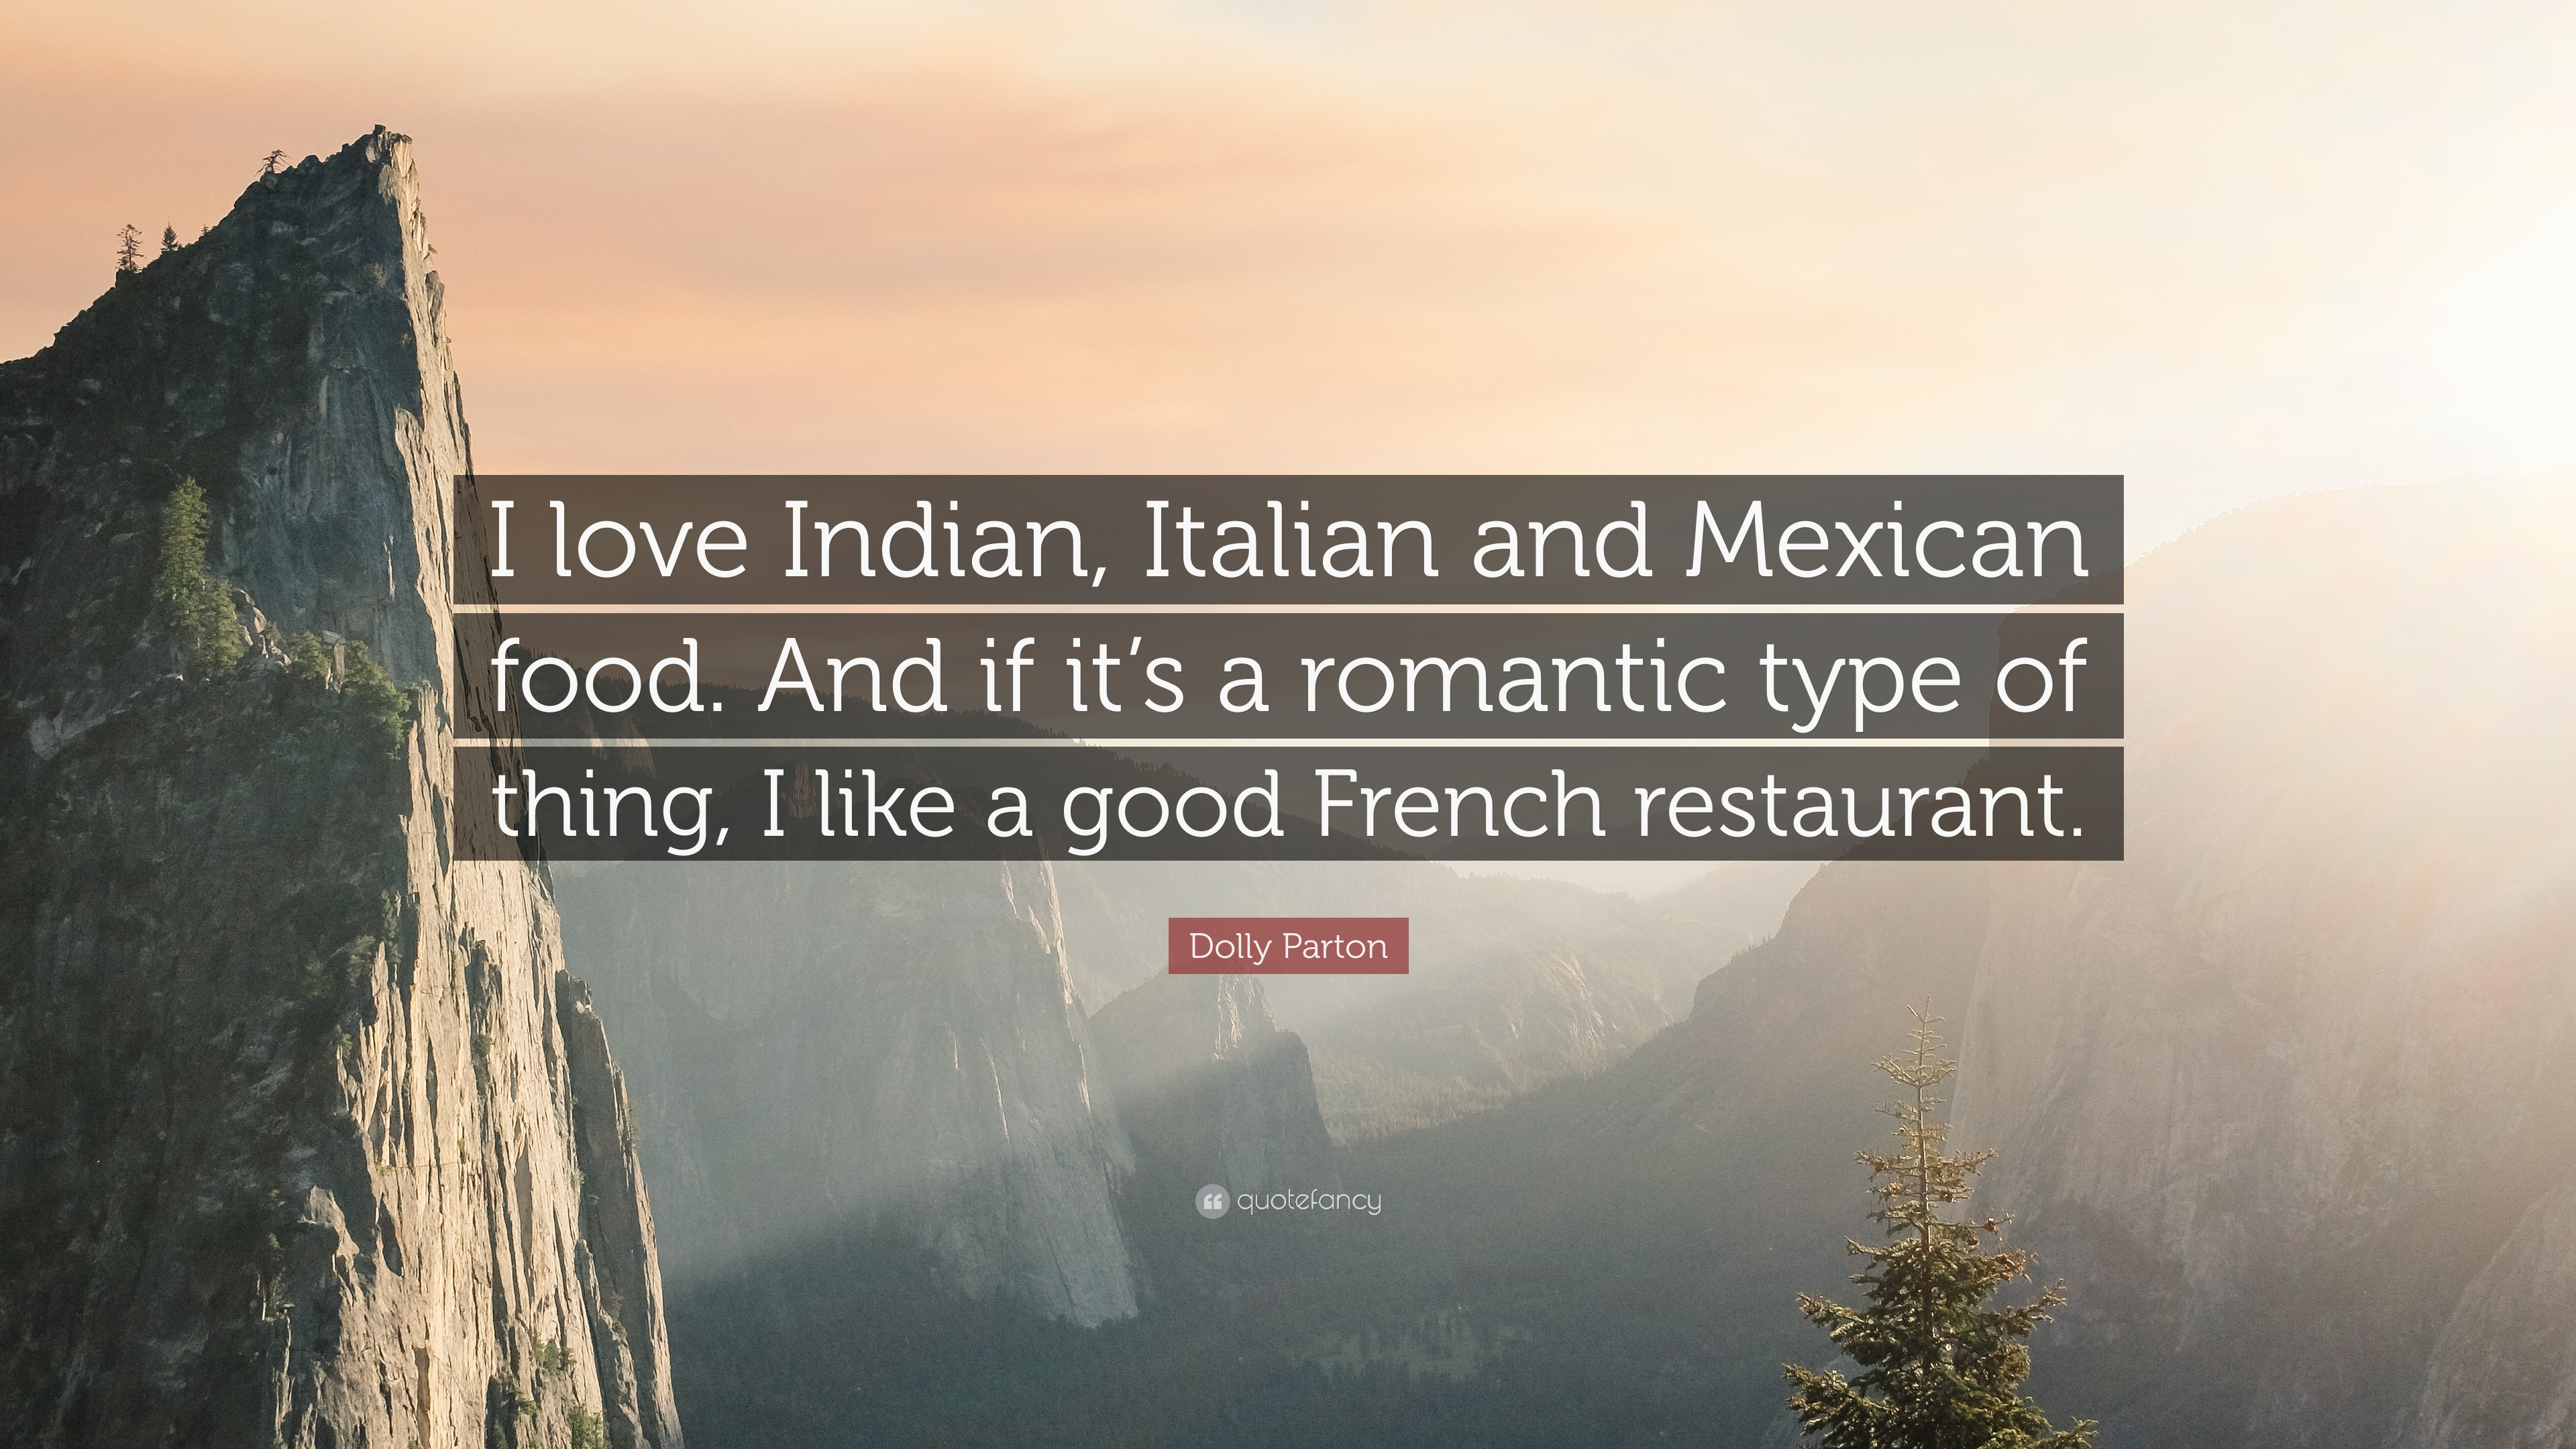 Simple Wallpaper Love Indian - 158358-Dolly-Parton-Quote-I-love-Indian-Italian-and-Mexican-food-And-if  Photograph_808097.jpg